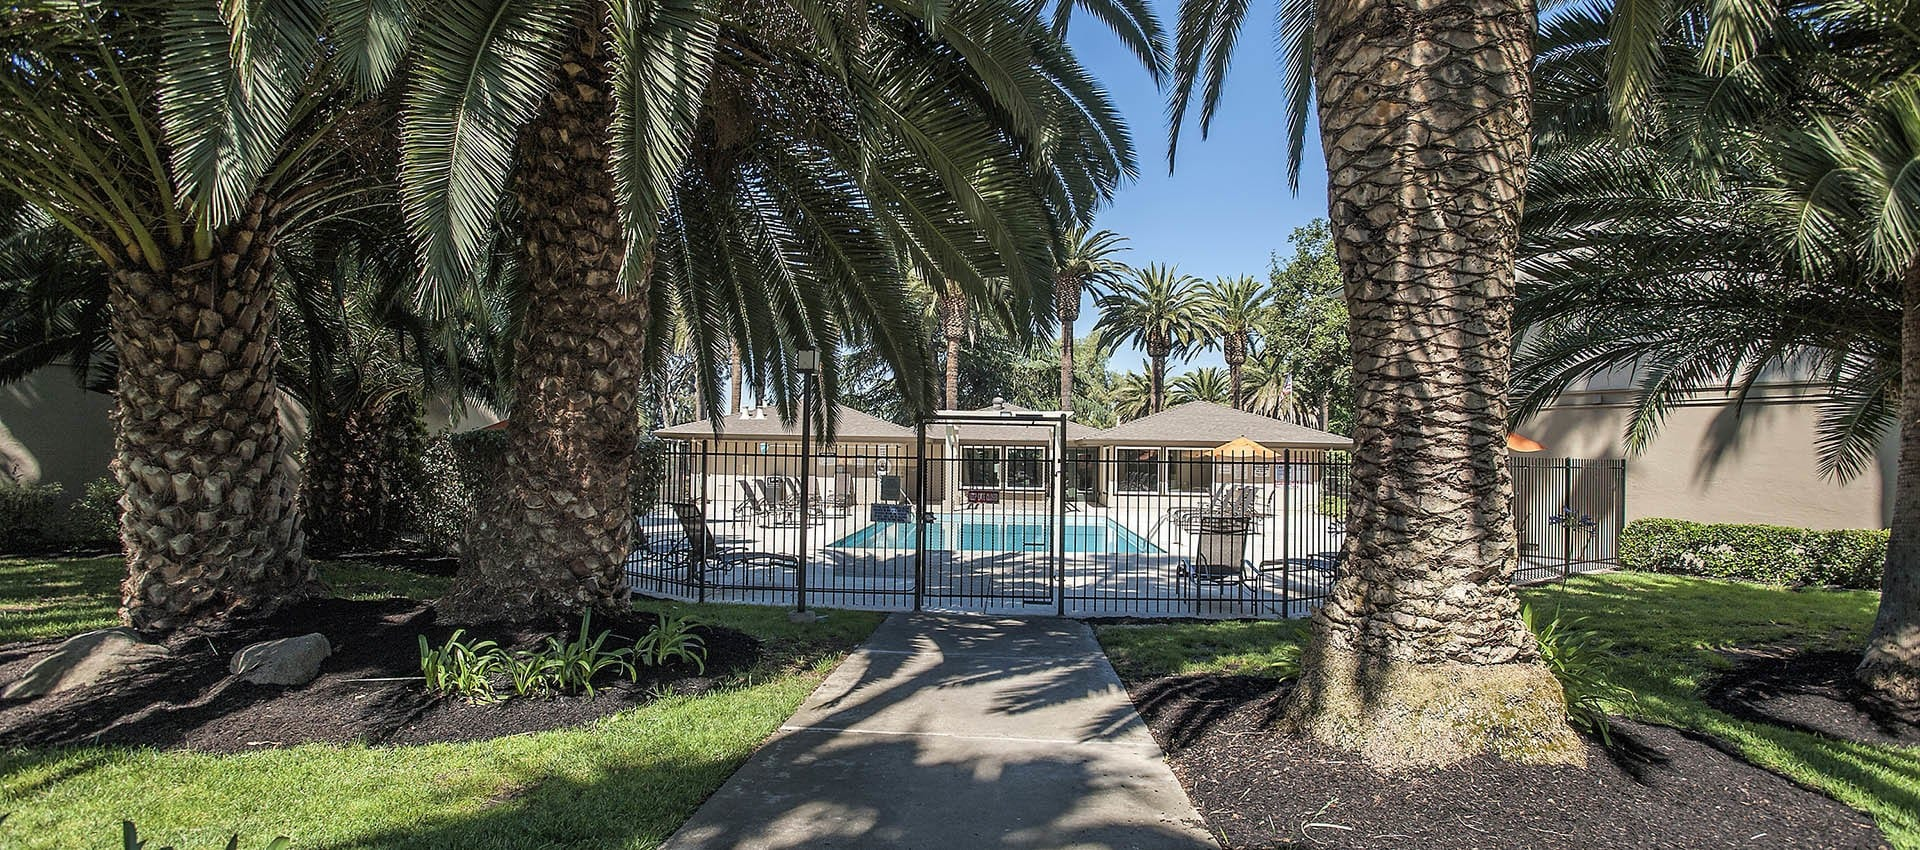 The grounds at Villa Palms Apartment Homes in Livermore, California